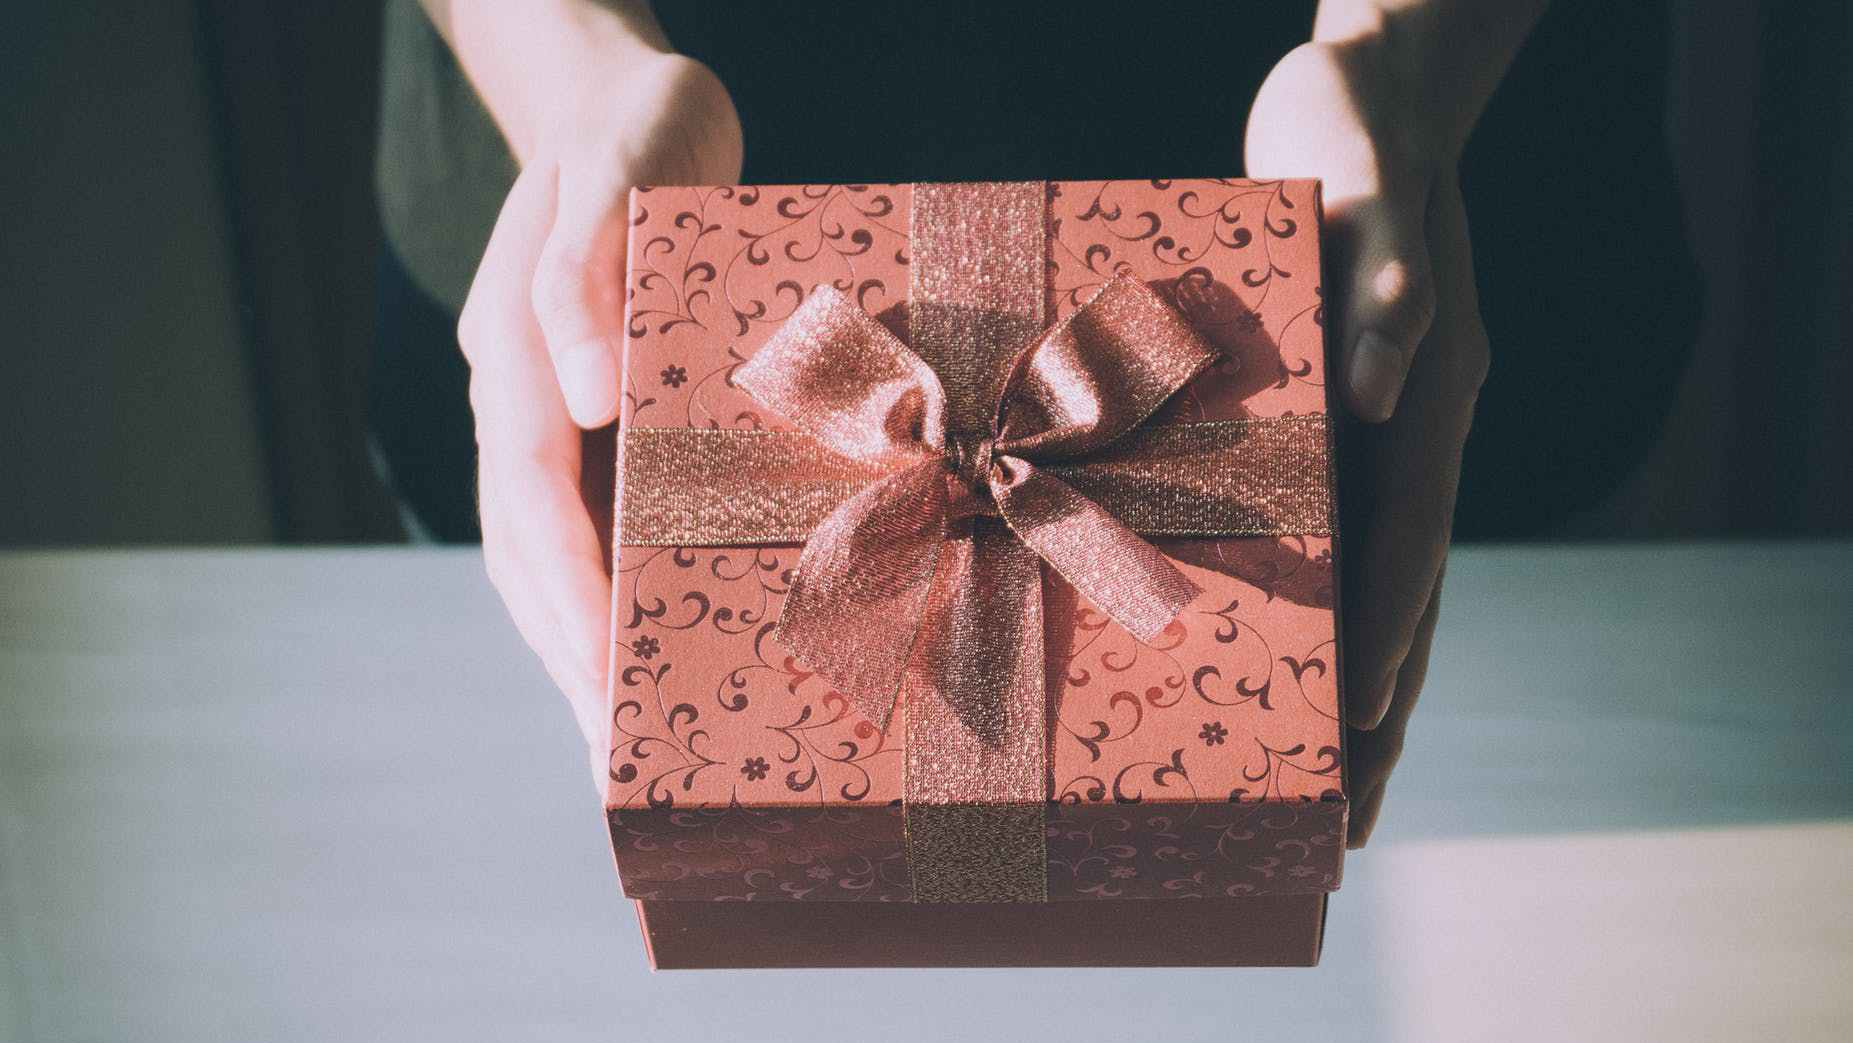 This is a photo of hands holding a box, which is symbolic of holding adoption loss and grief. Helping adoptees and foster kids to open it and look inside seems impossible. However, this practical tool will facilitate active grieving.